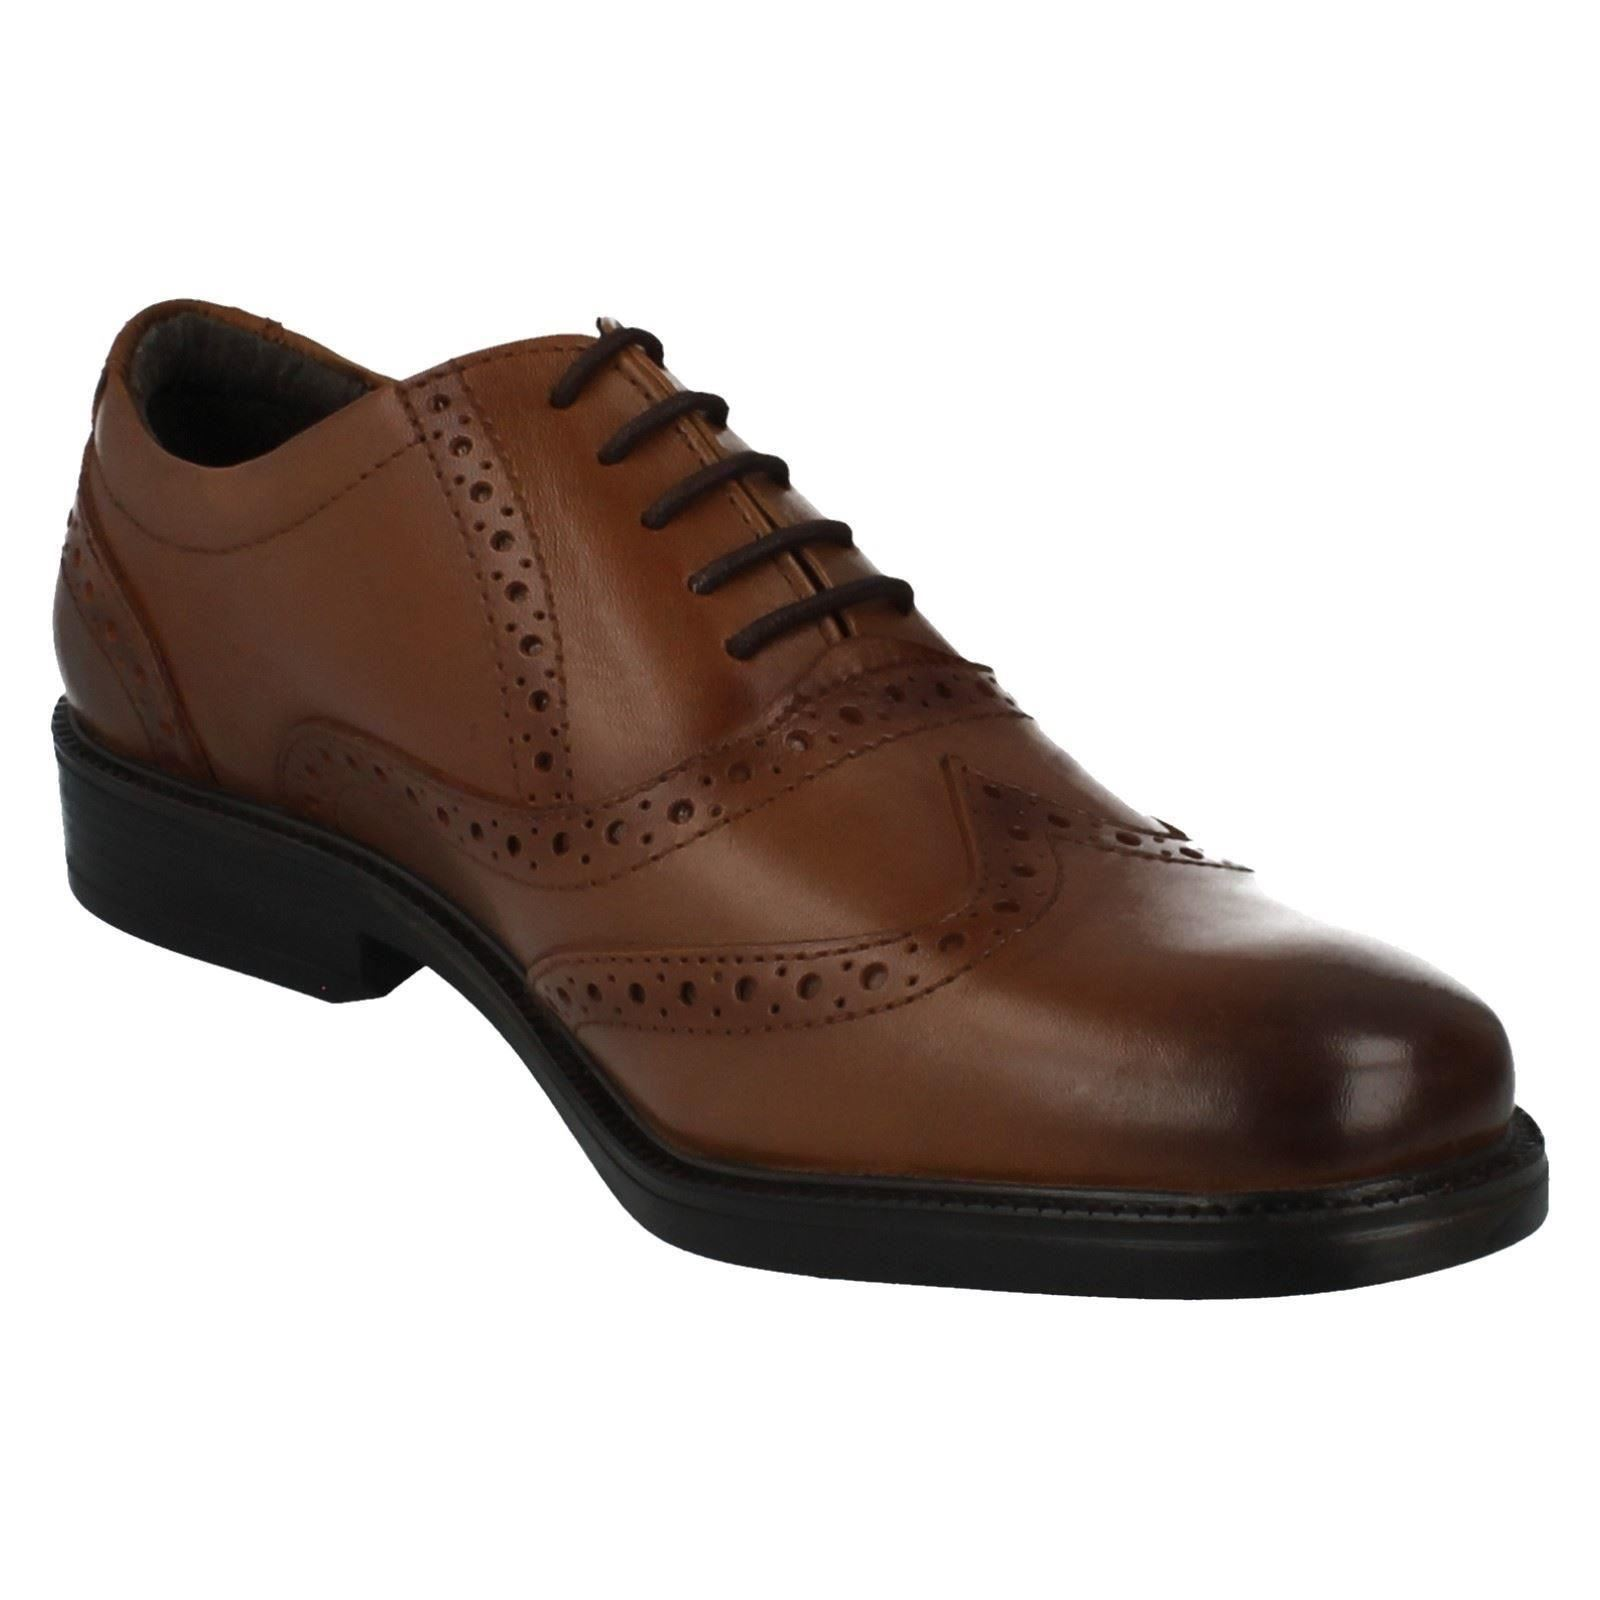 Uomo Hush Puppies Brogue Schuhes Brogue The Style - Rockford Brogue Schuhes 267fa6